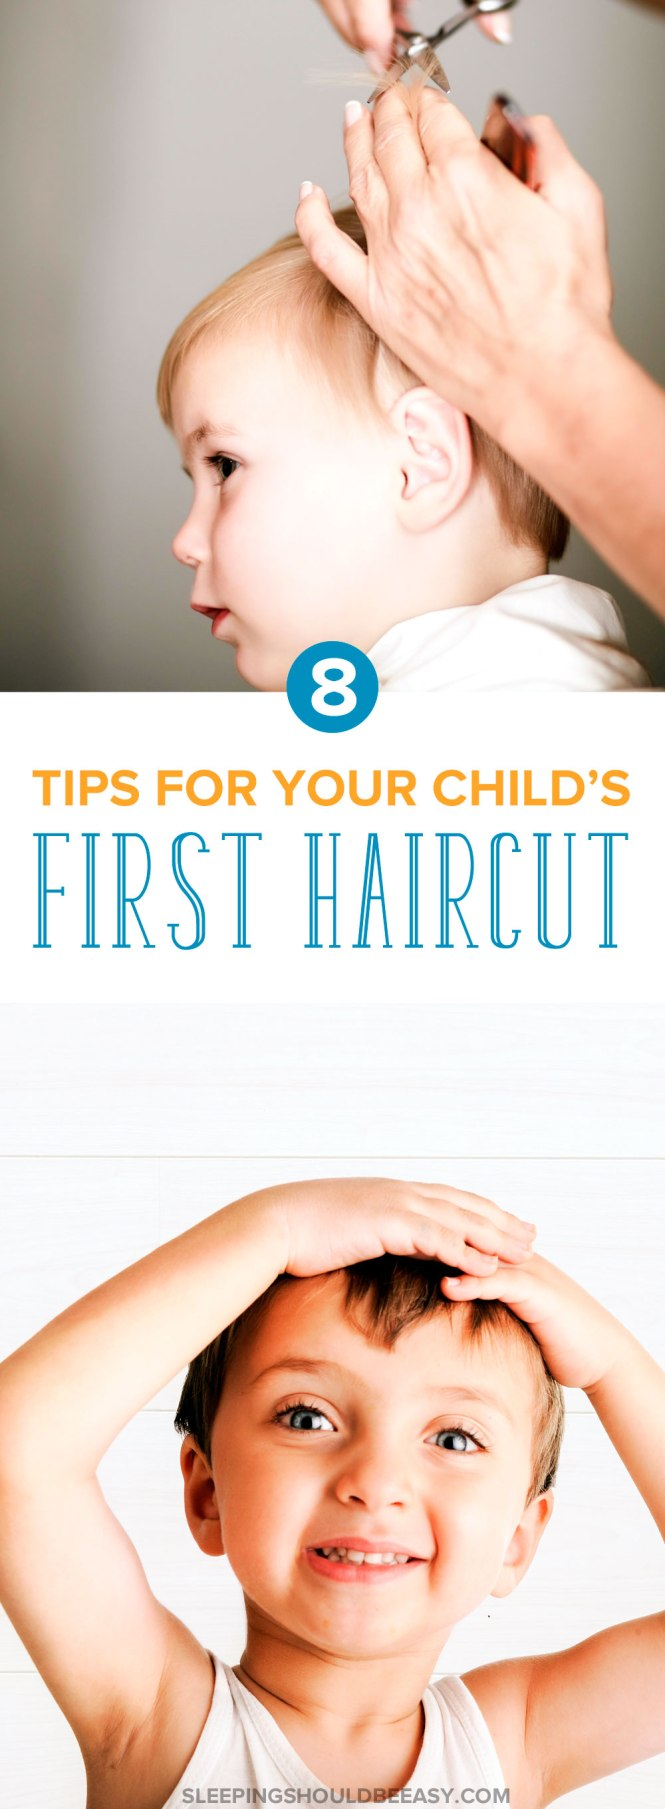 Haircut tip amount choice image haircuts for men and women proper tip amount for haircut the best haircut of 2018 tip on haircut images ideas for winobraniefo Choice Image